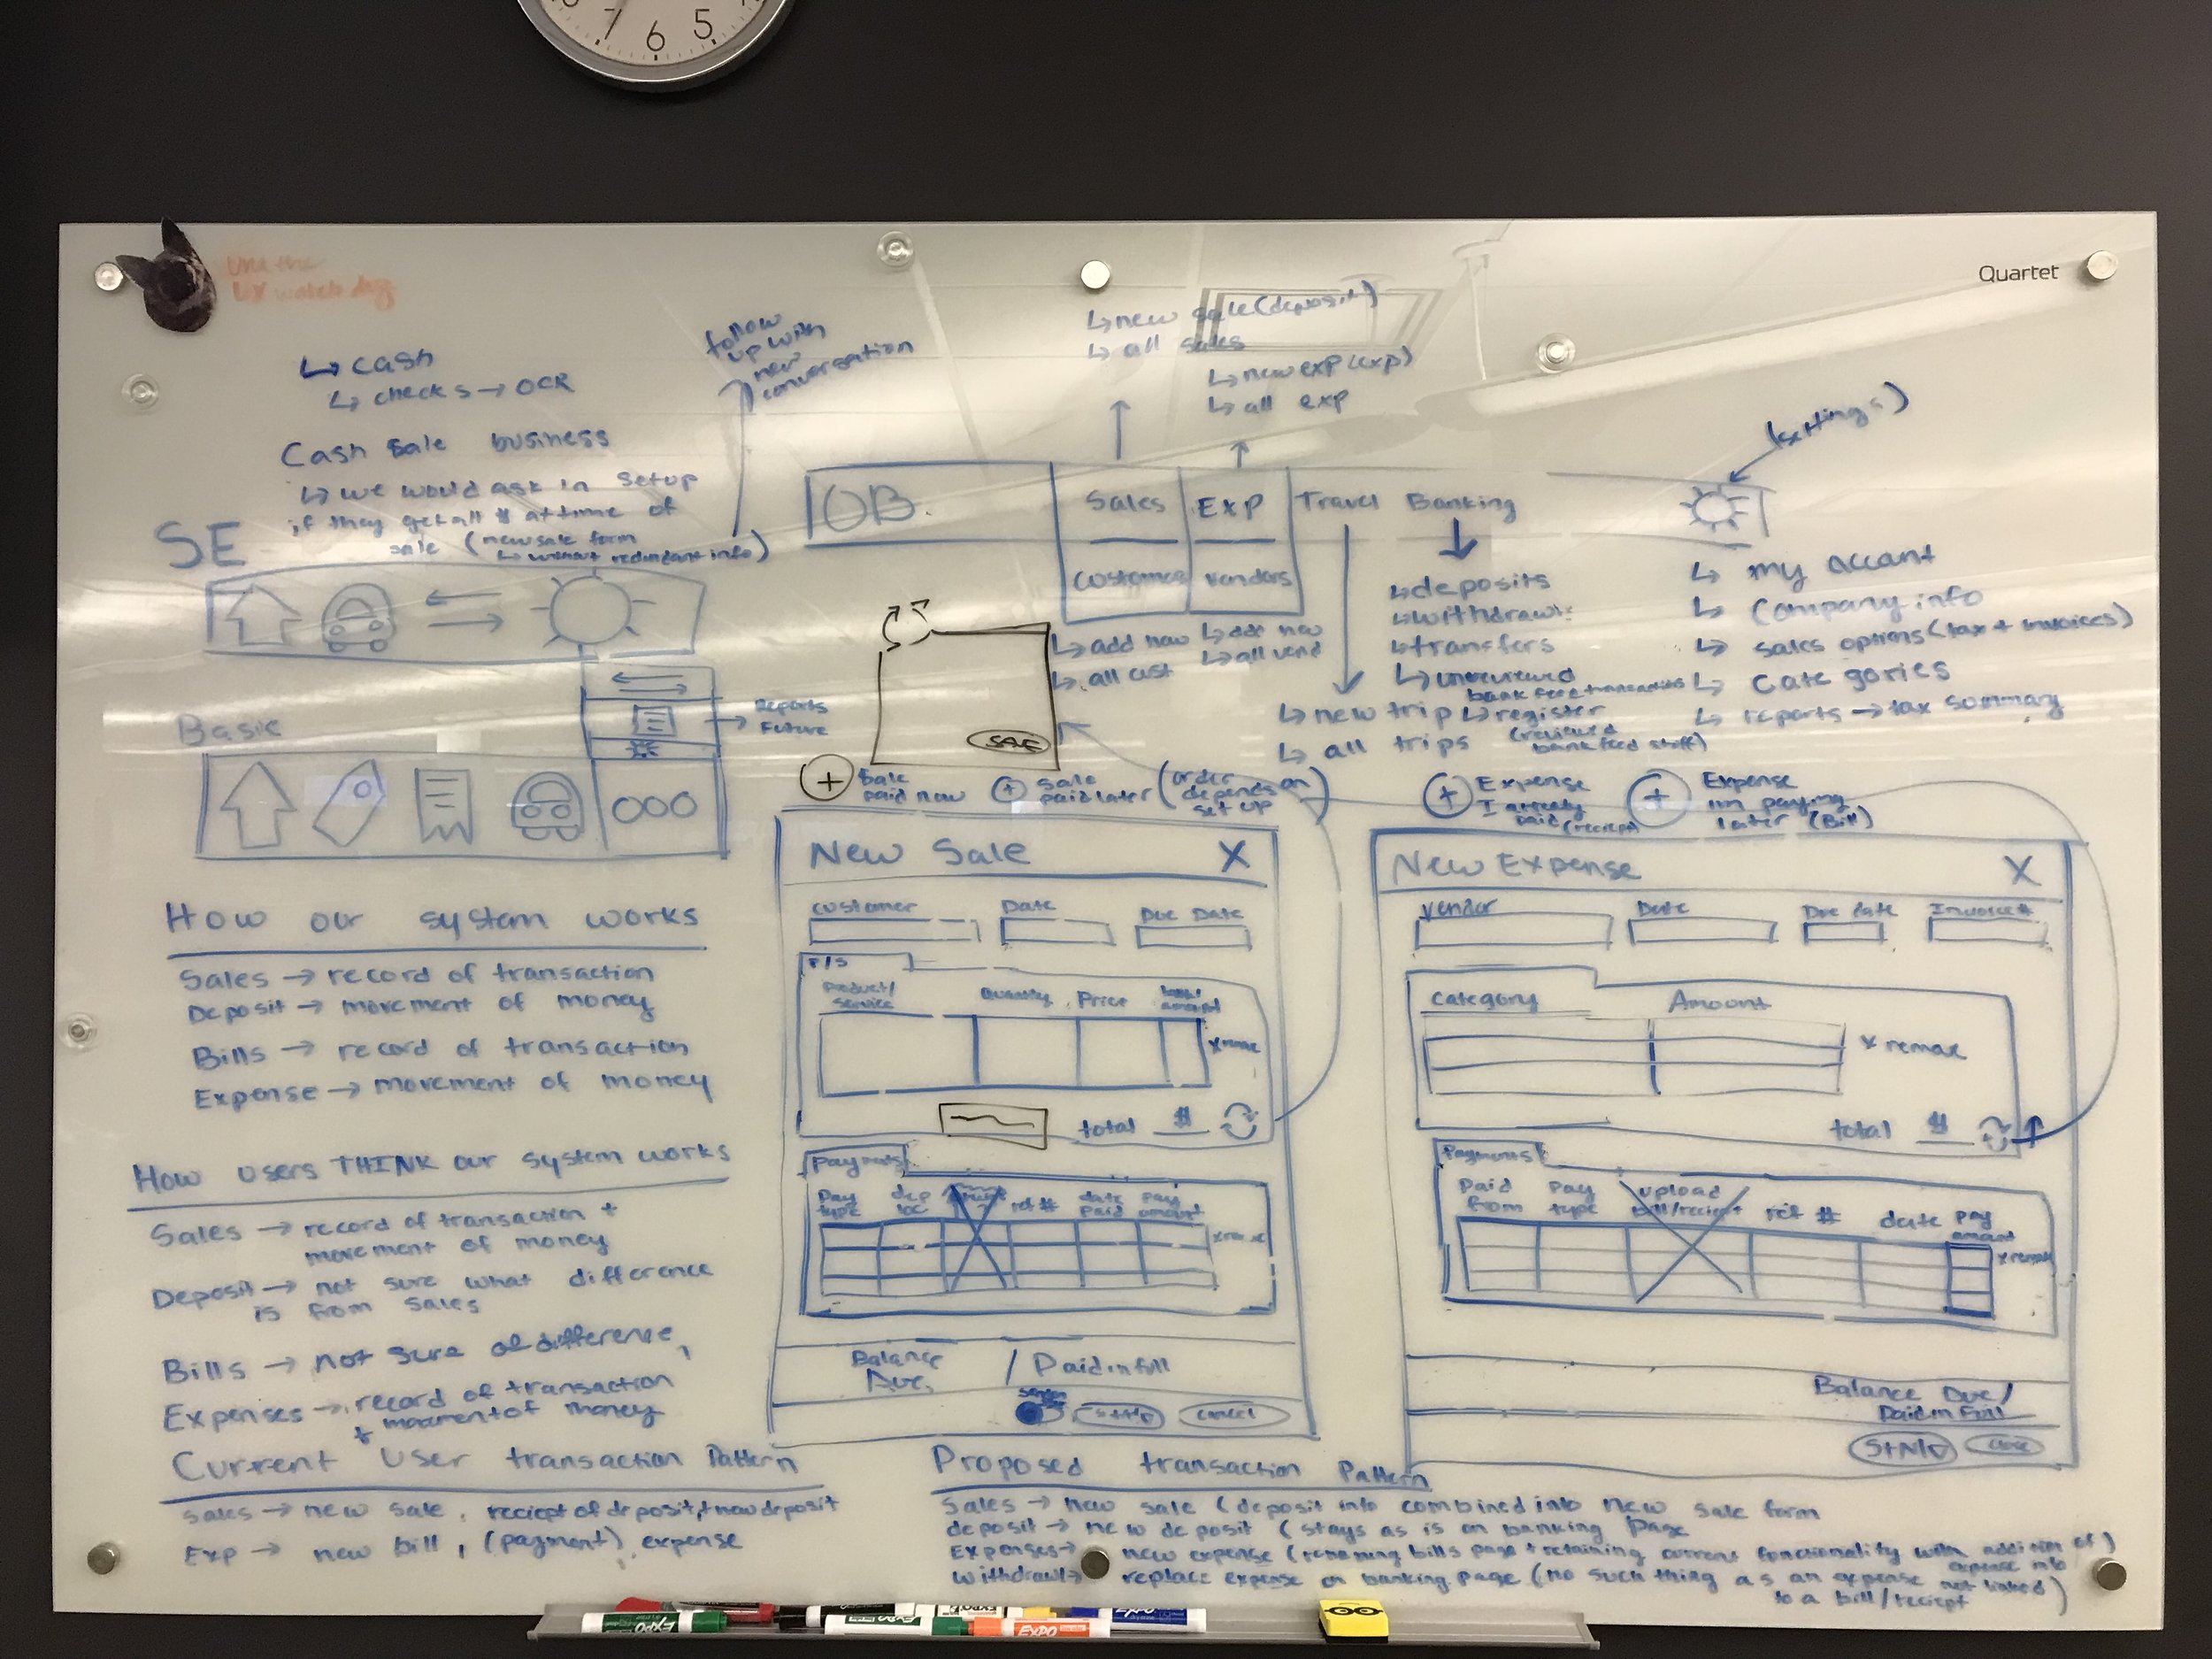 Sales and Expenses Flow Redesign Brainstorm